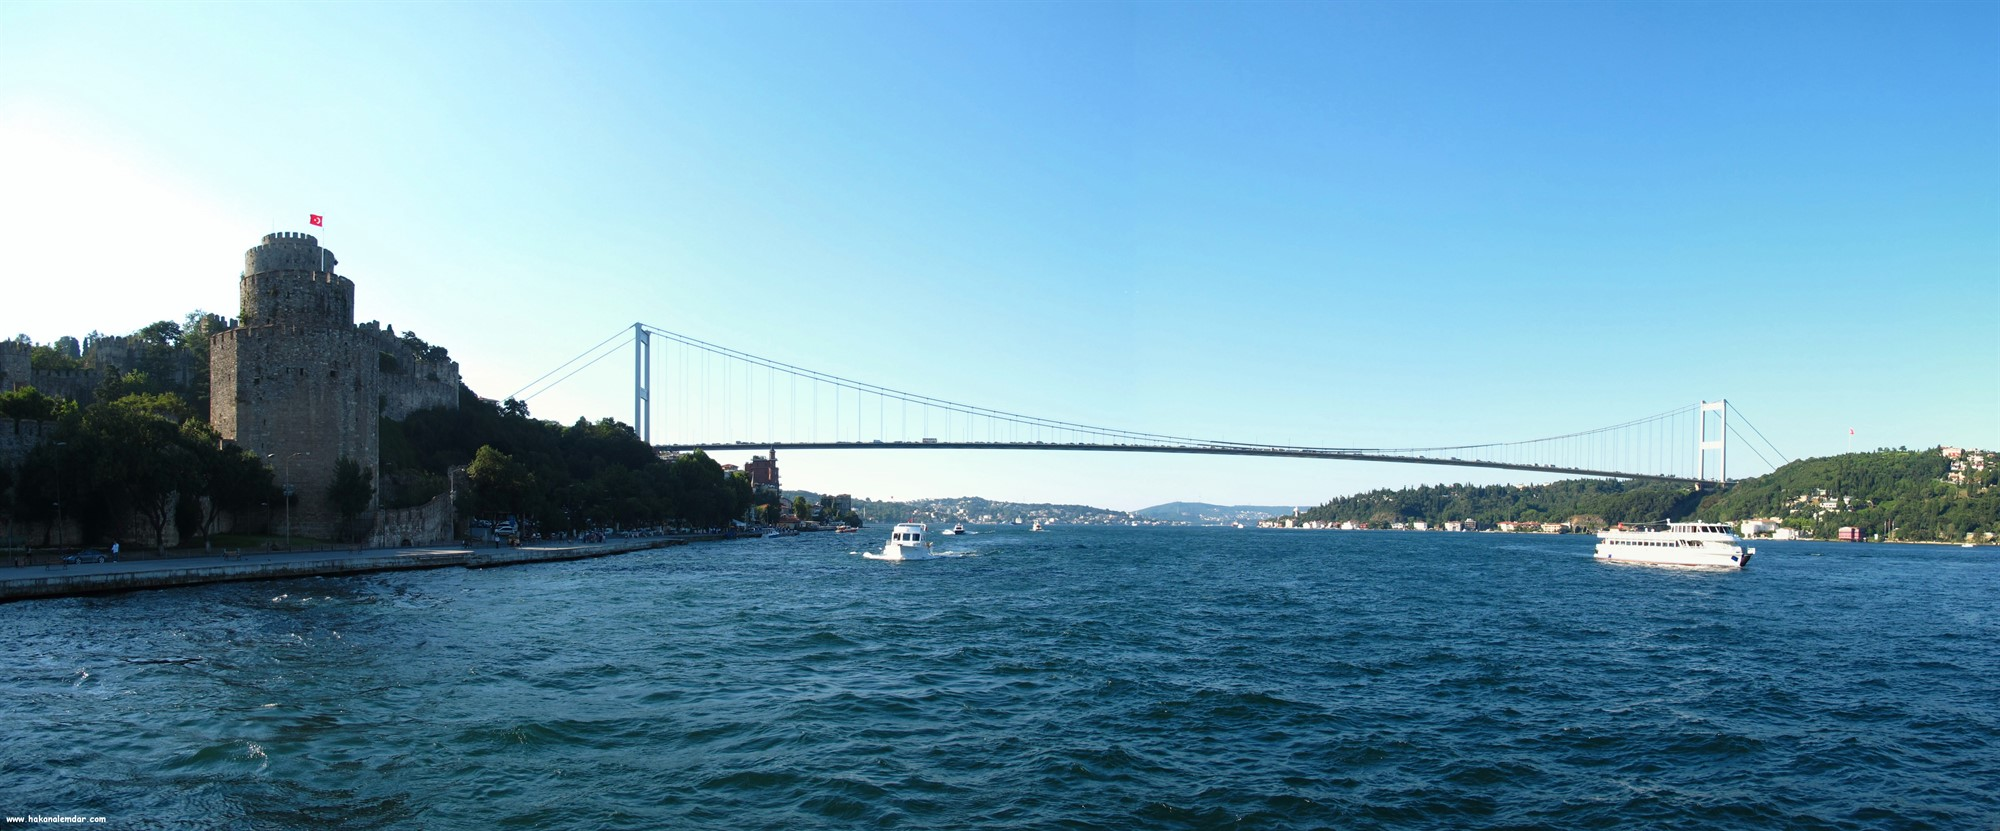 One Day in Istanbul - Bosphorus